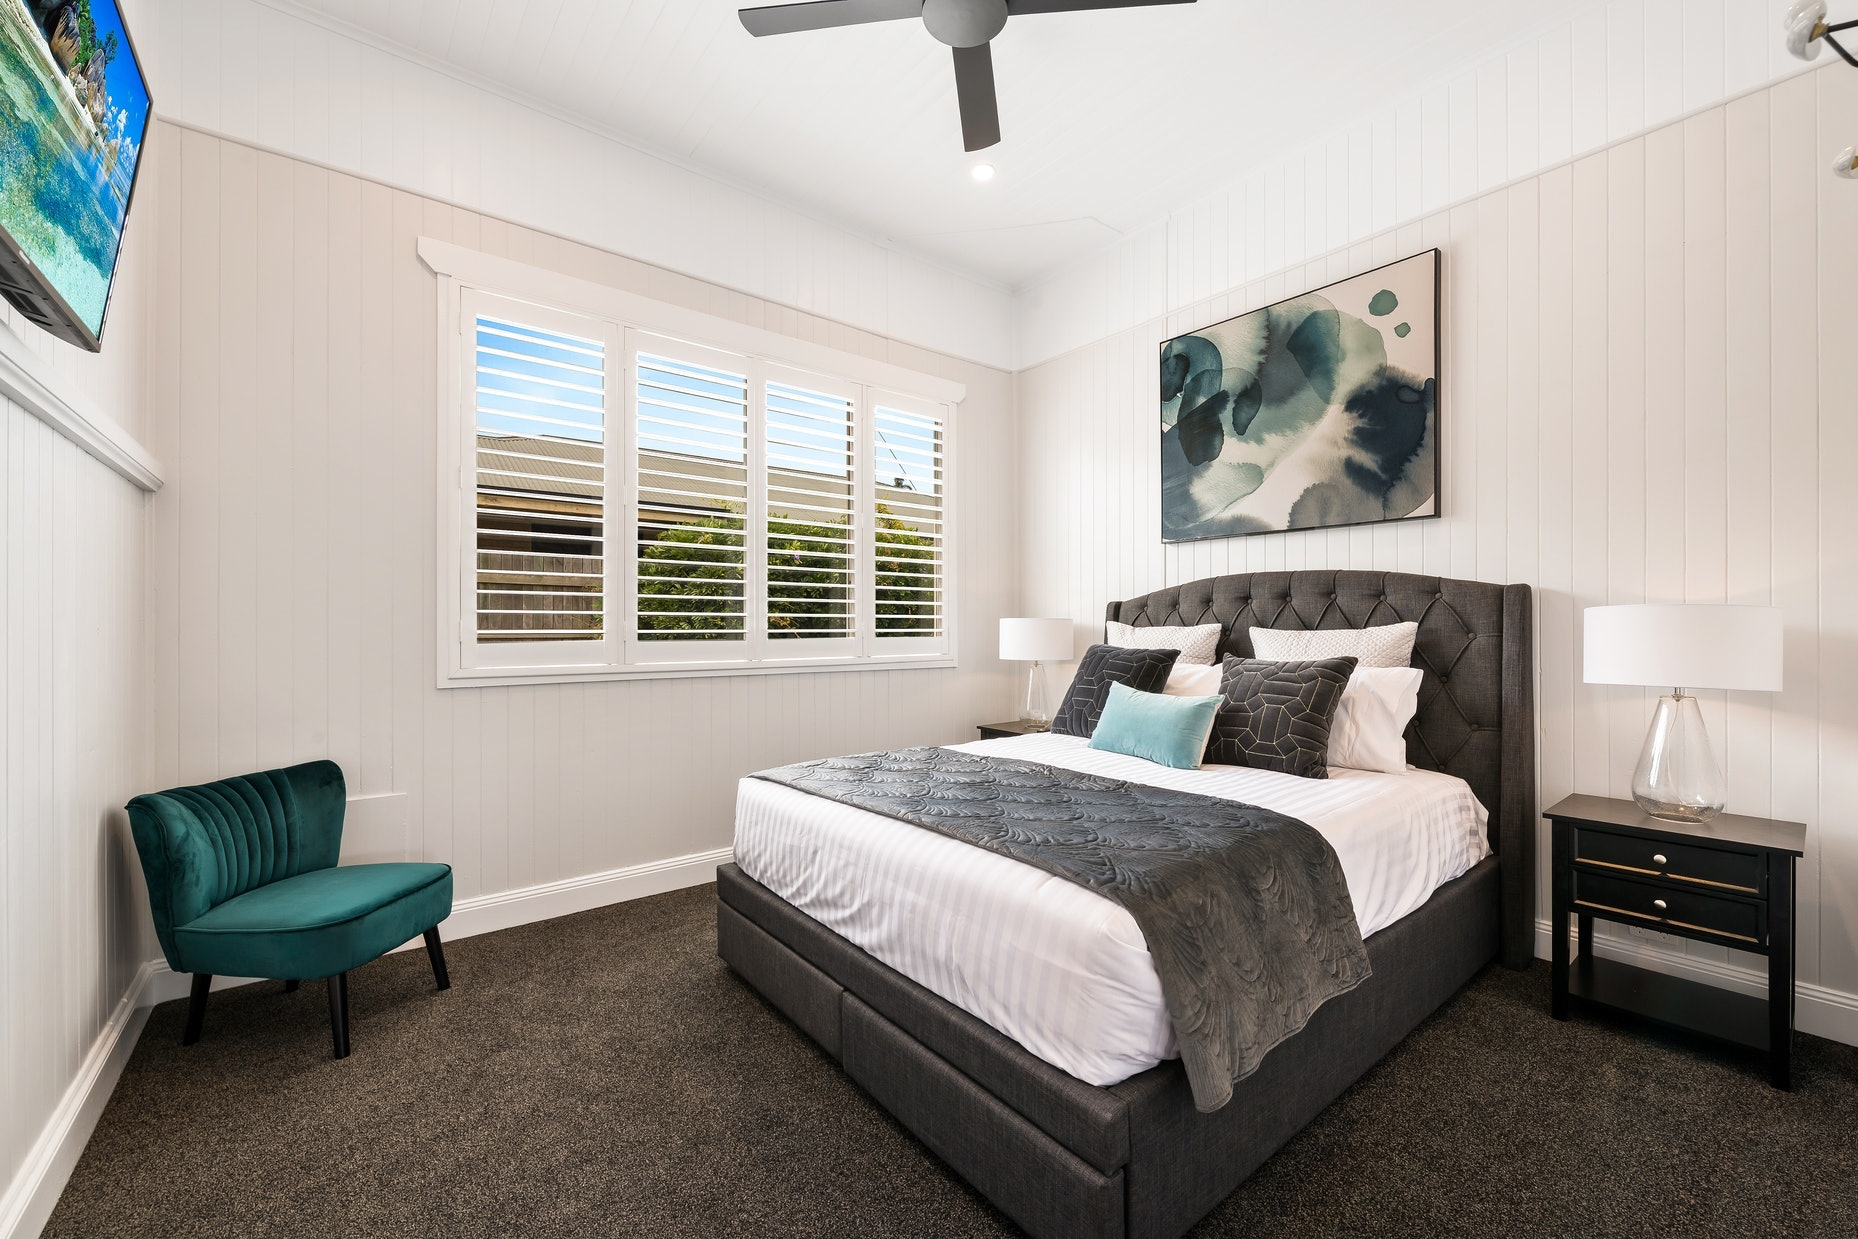 Bedroom with large artwork above bed and chair in the corner